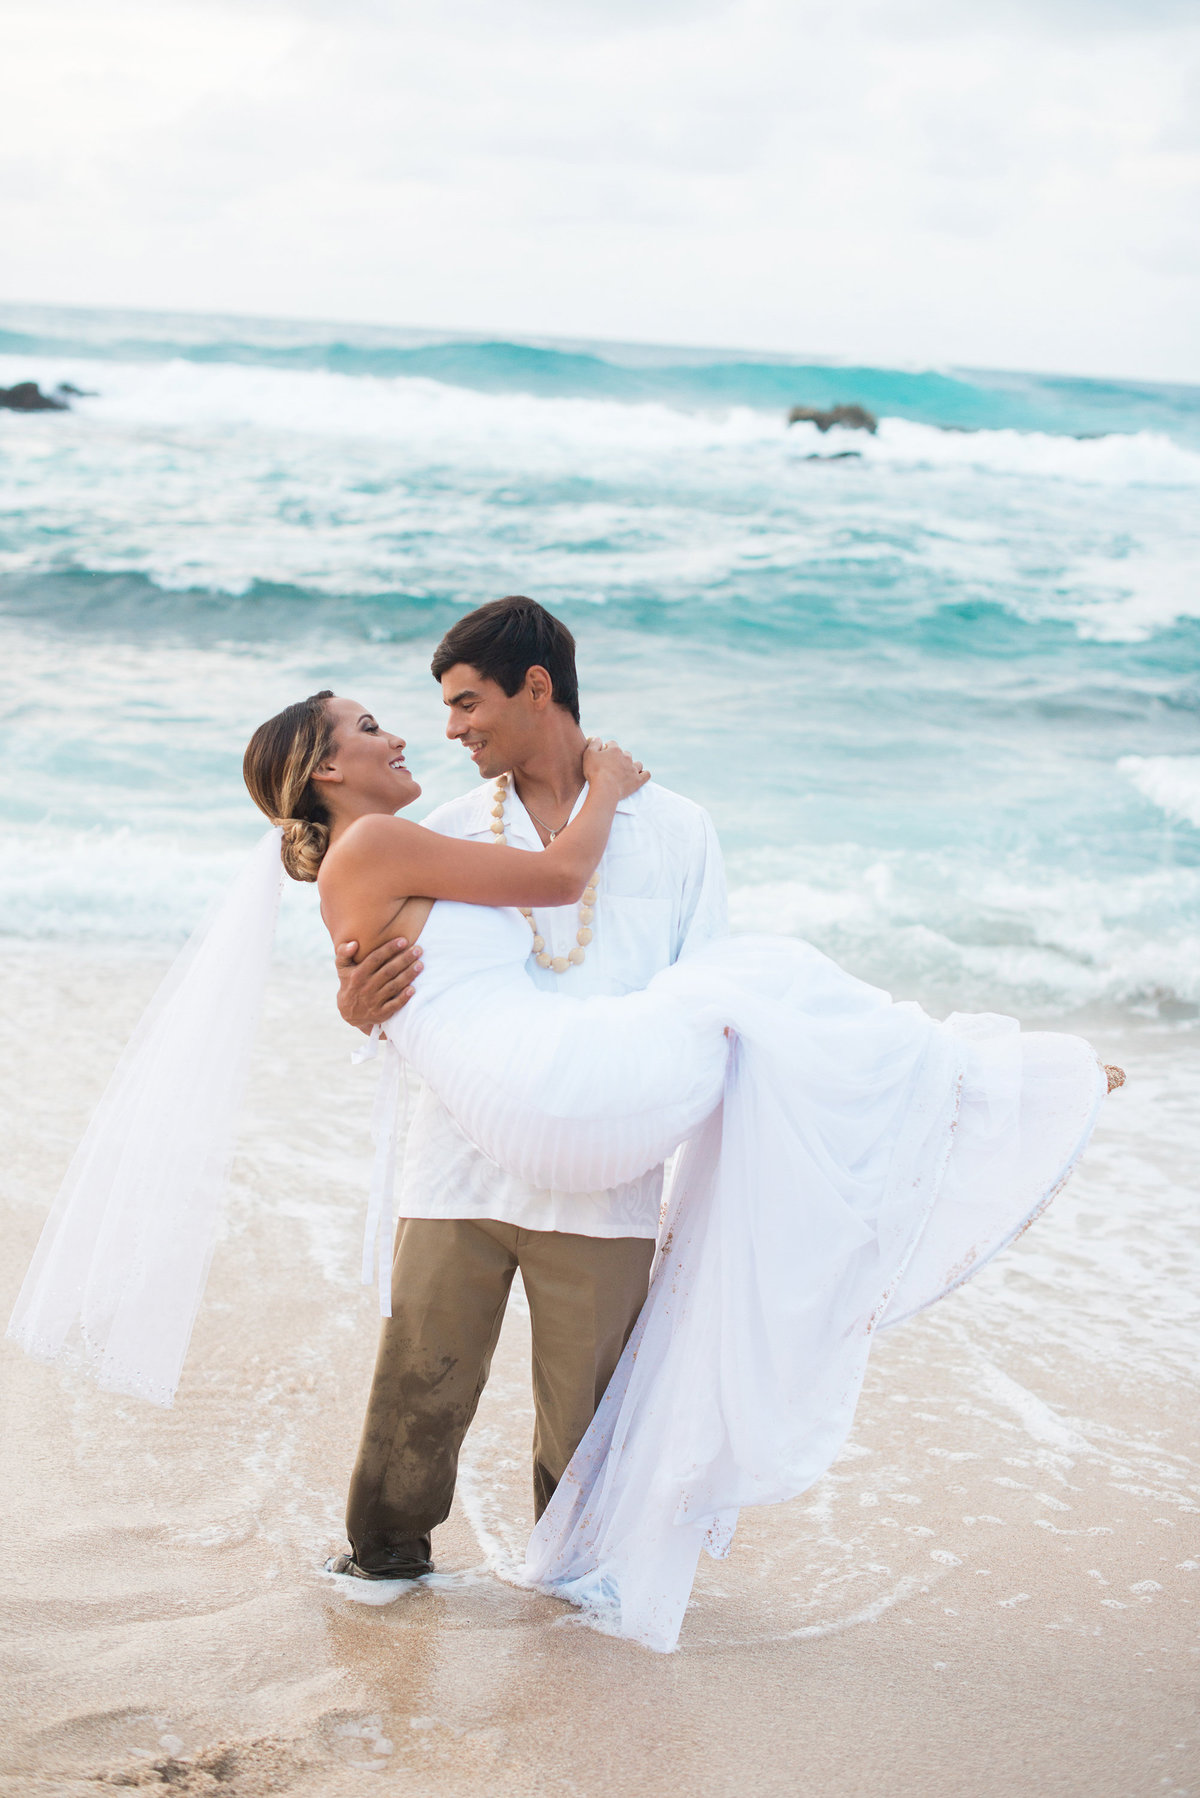 Intimate Elopement in Hawaii